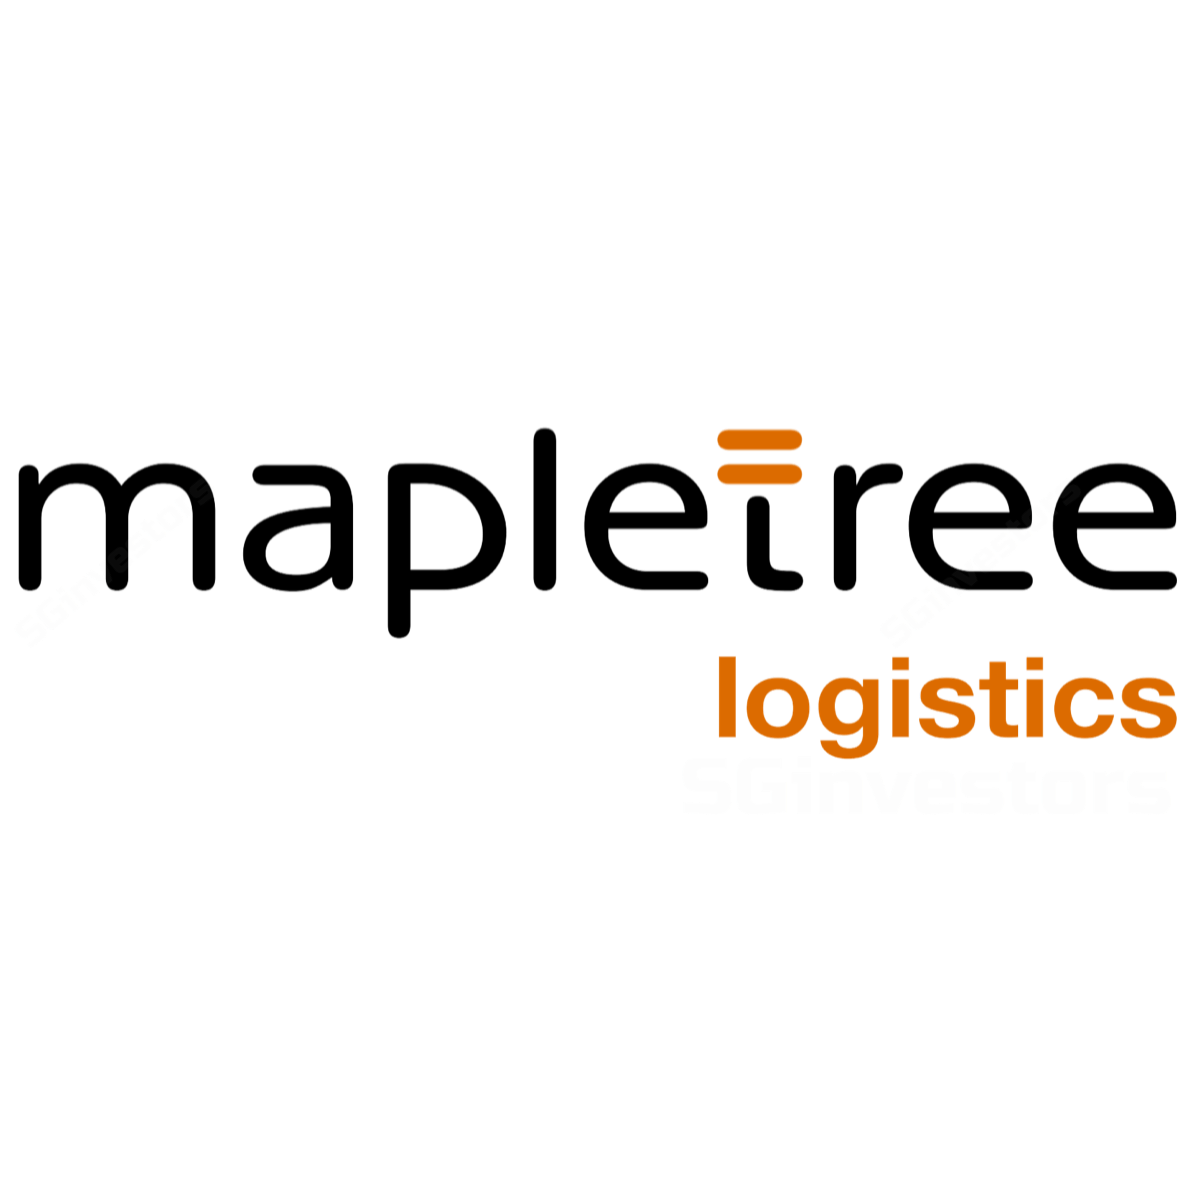 Mapletree Logistics Trust (MLT SP) - DBS Vickers 2018-01-08: Gains A Firmer Foothold In Hong Kong